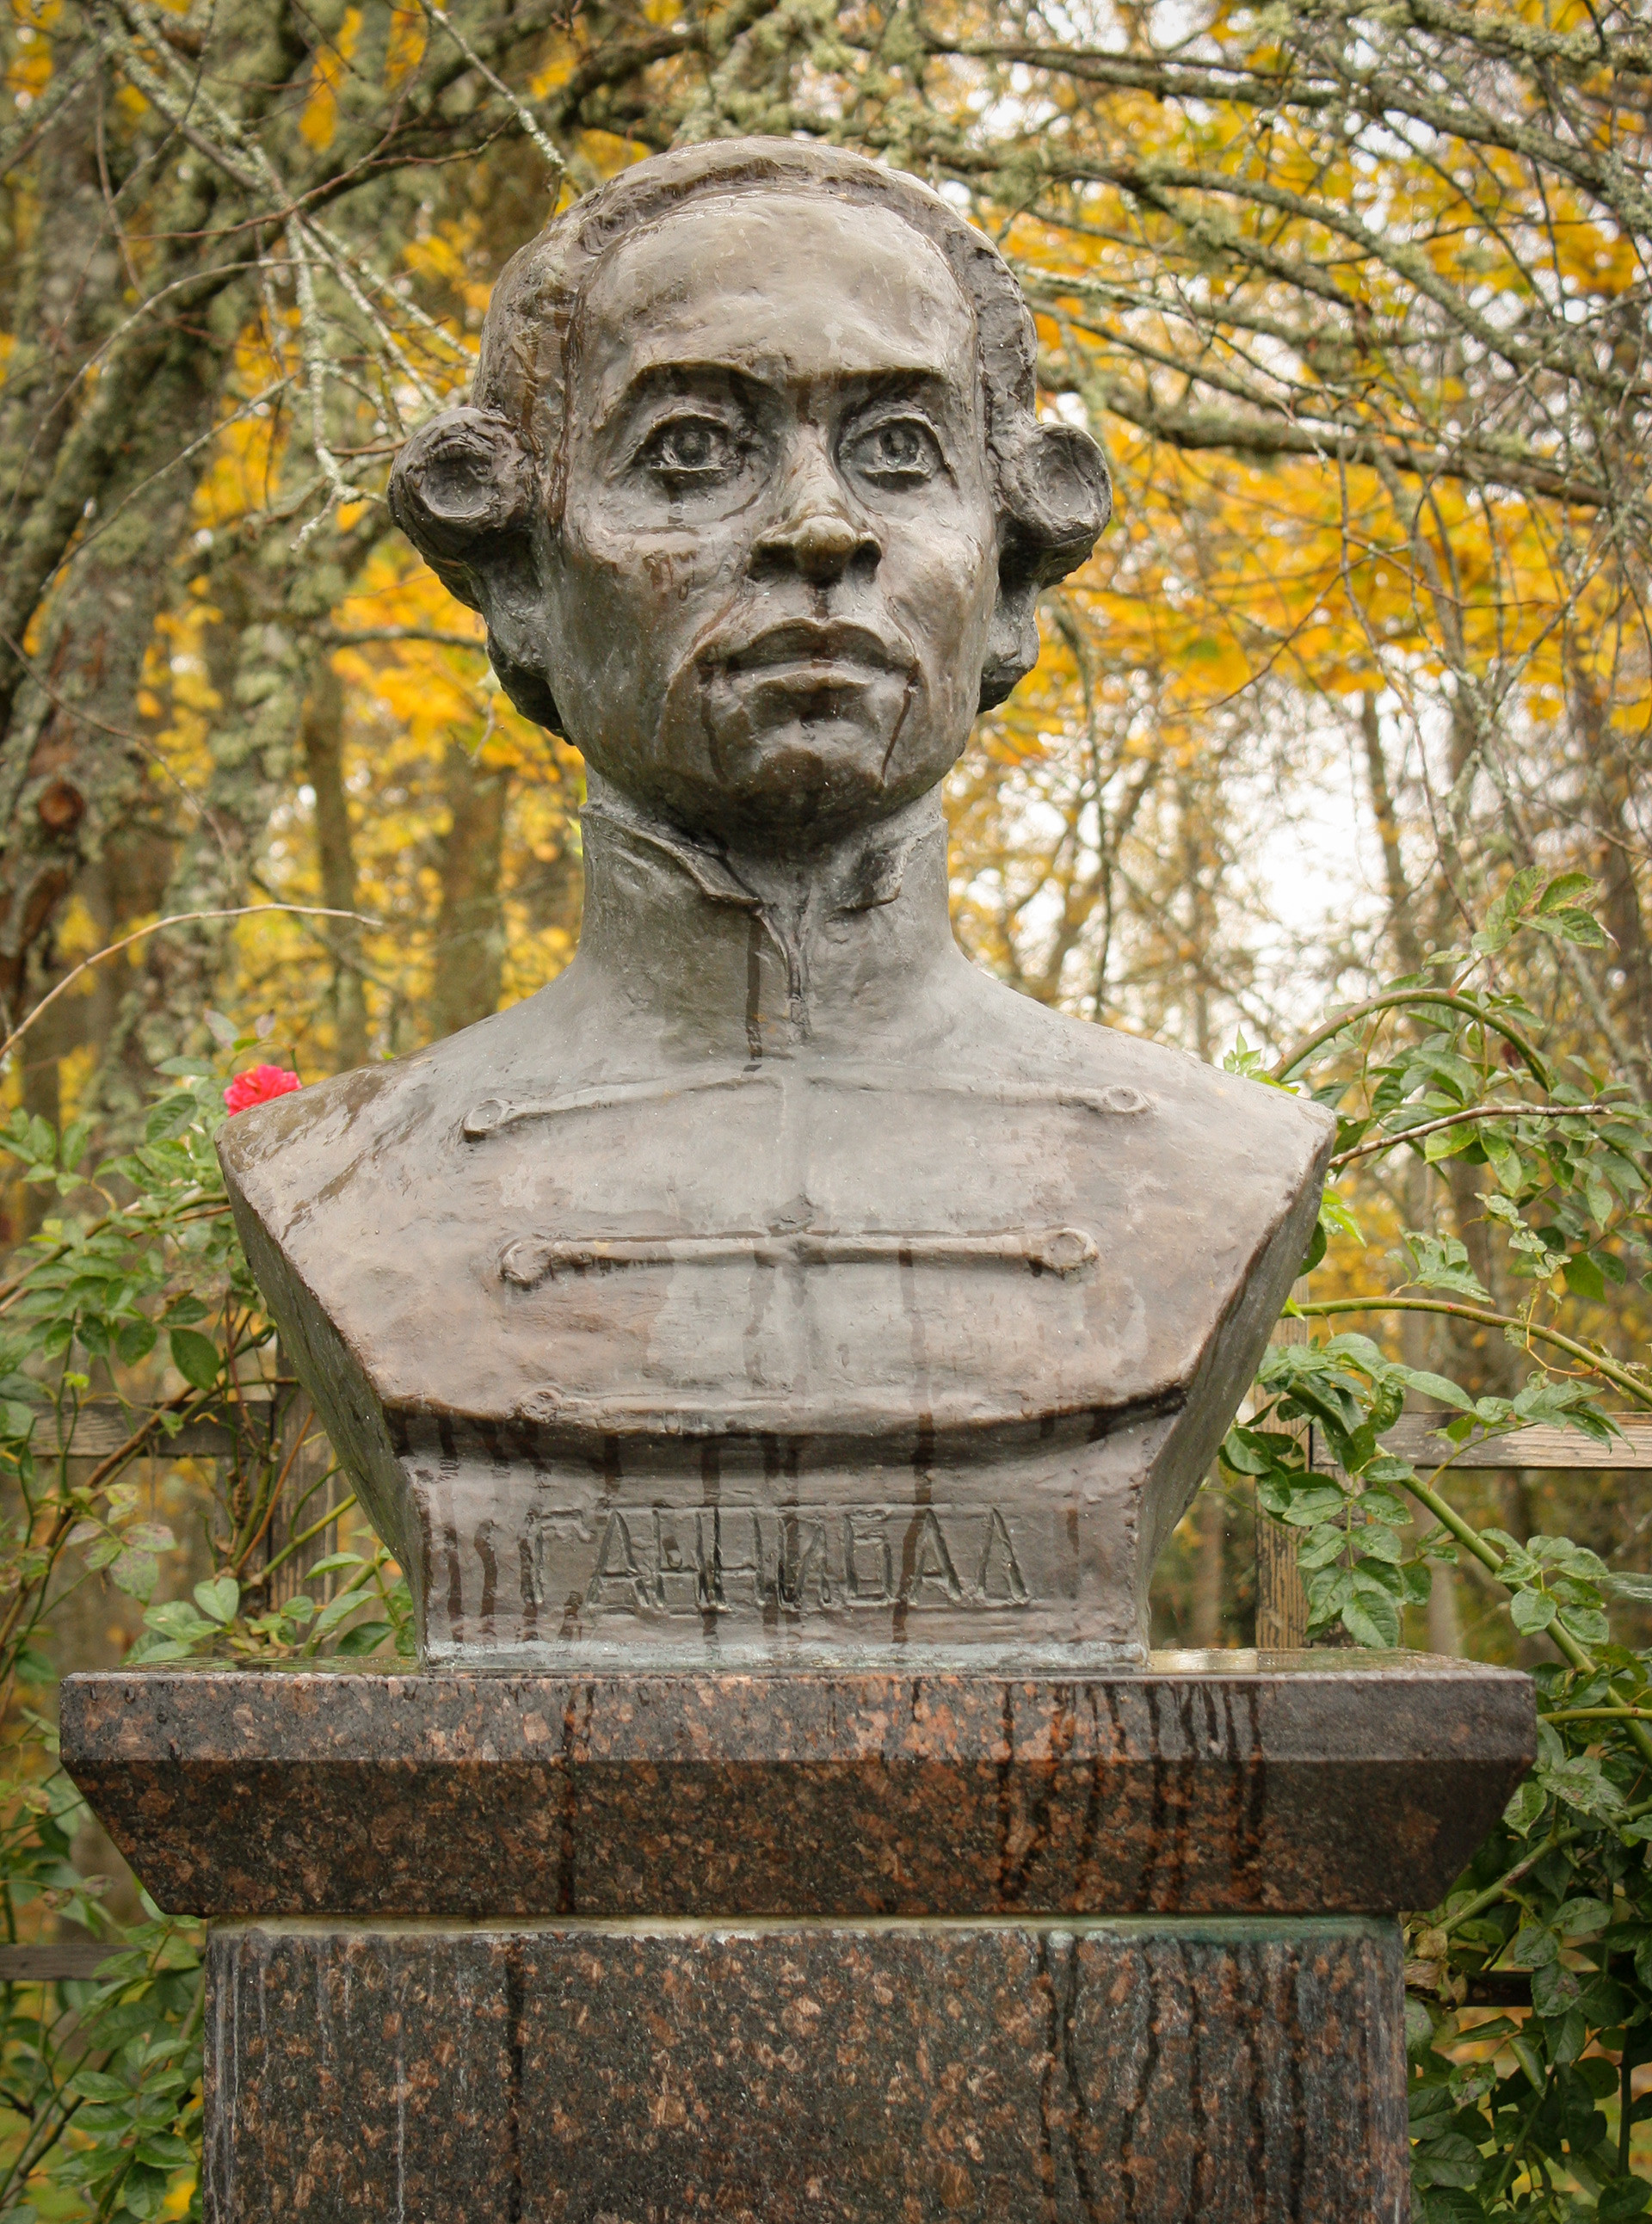 Abram Hannibal's monument in the Petrovskoye village, Pskov Region, Russia.